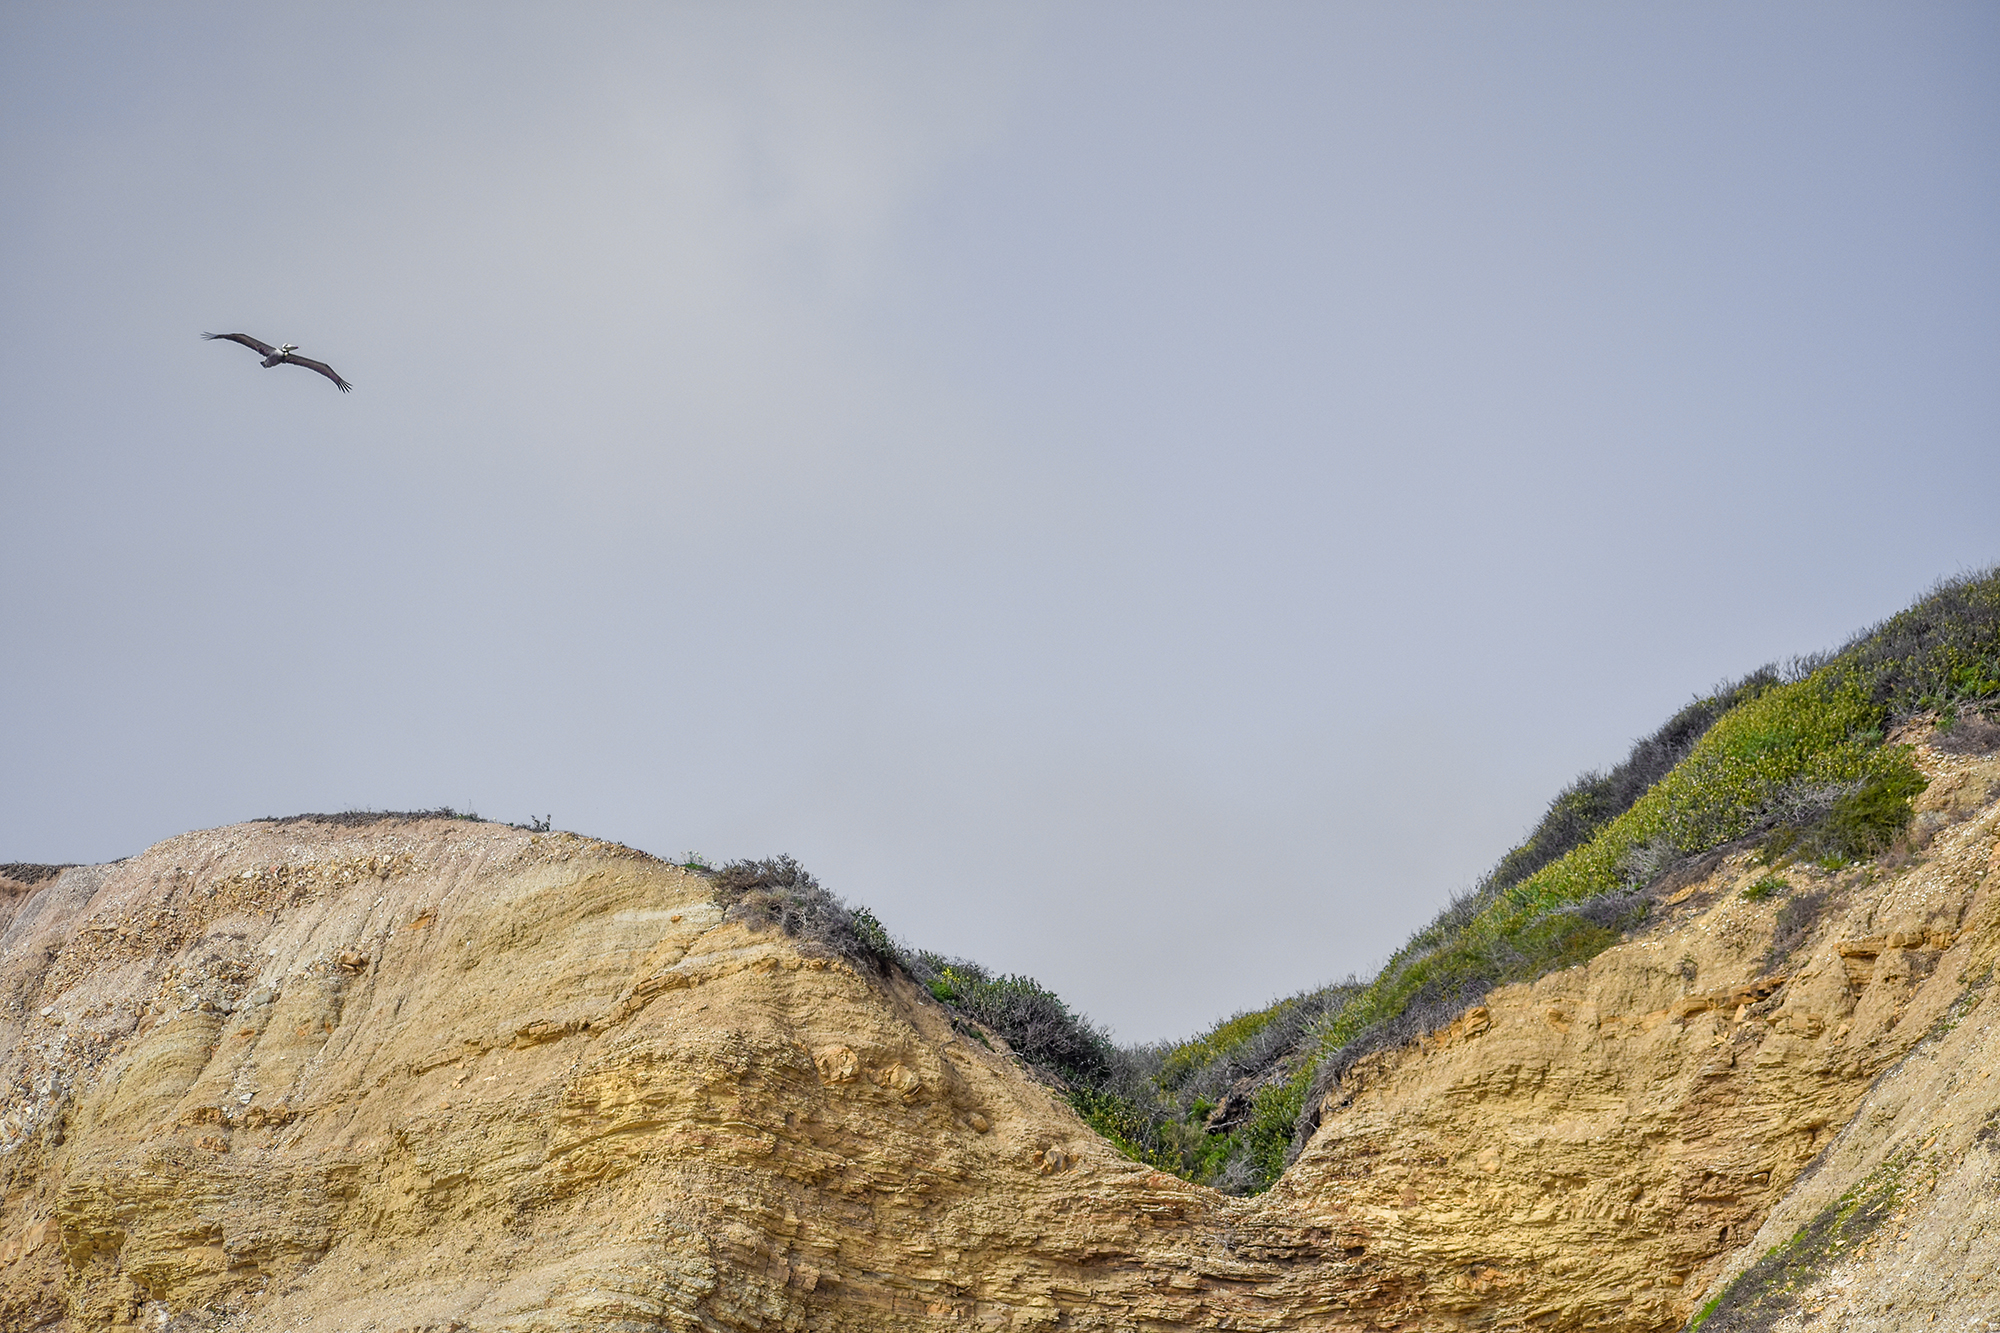 Pelican flys over a coastal cliff along the coast of Southern California.